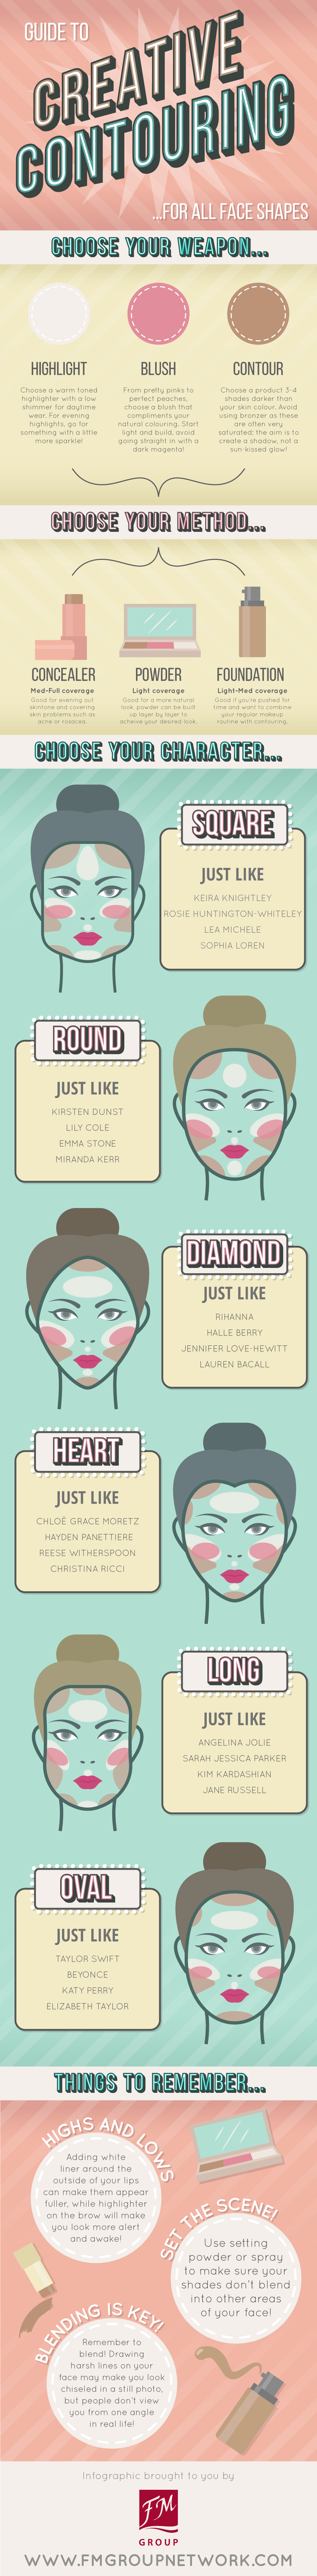 A Creative Guide To Contouring